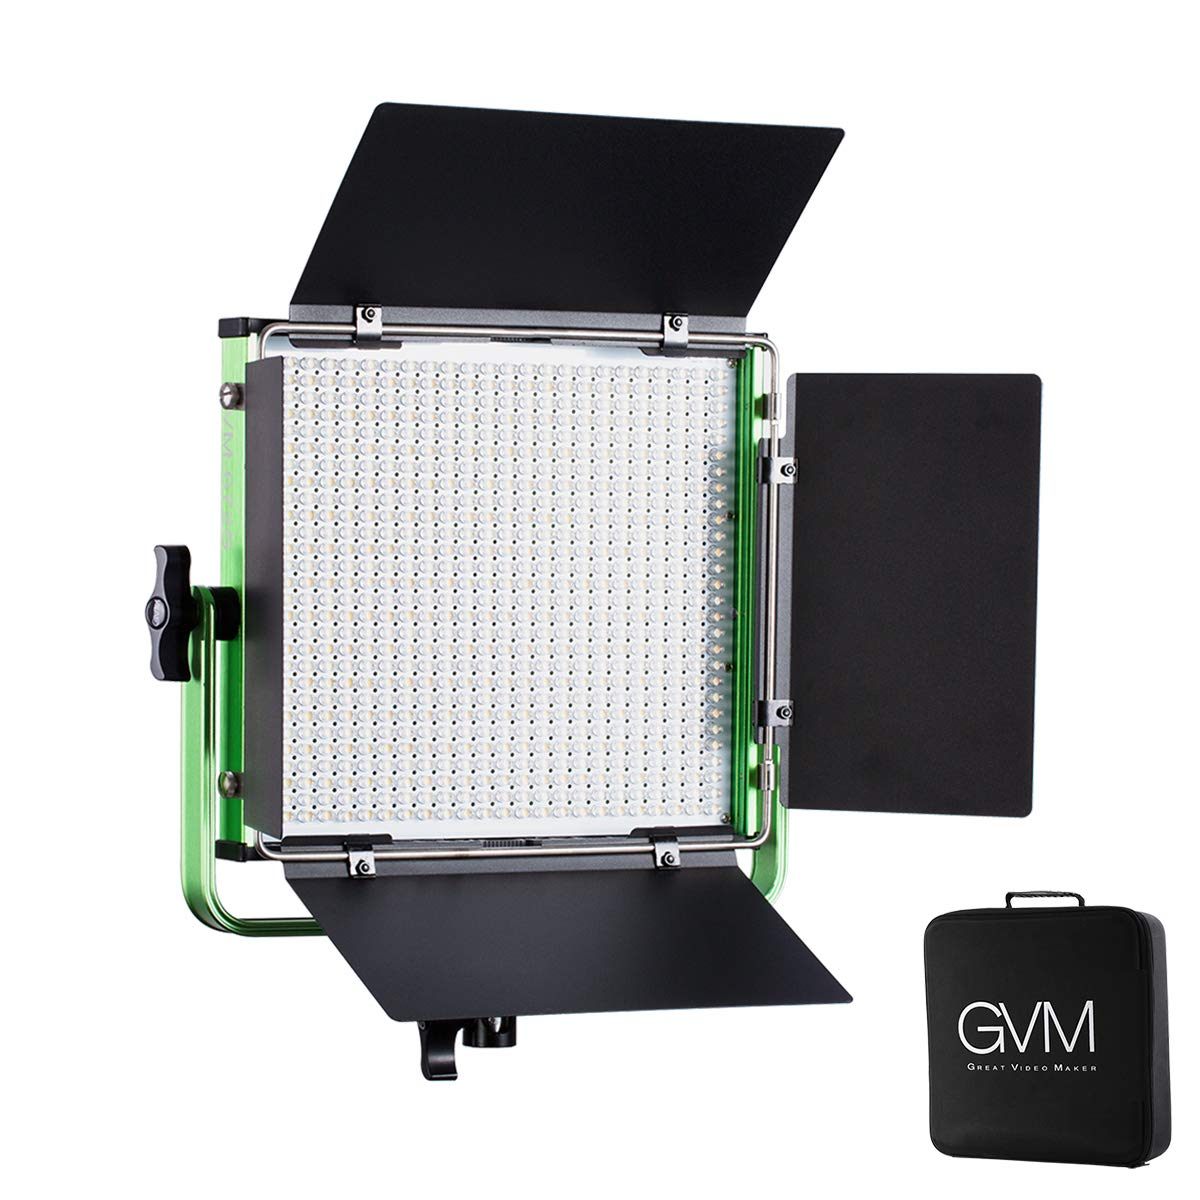 22000lux Dimmable Bi-Color 3200K-5600K Light Panel with Digital Display for Outdoor Interview Studio Video Making Photography Lighting 2 pcs Kit LED Video Light GVM 672S CRI97 TLCI97